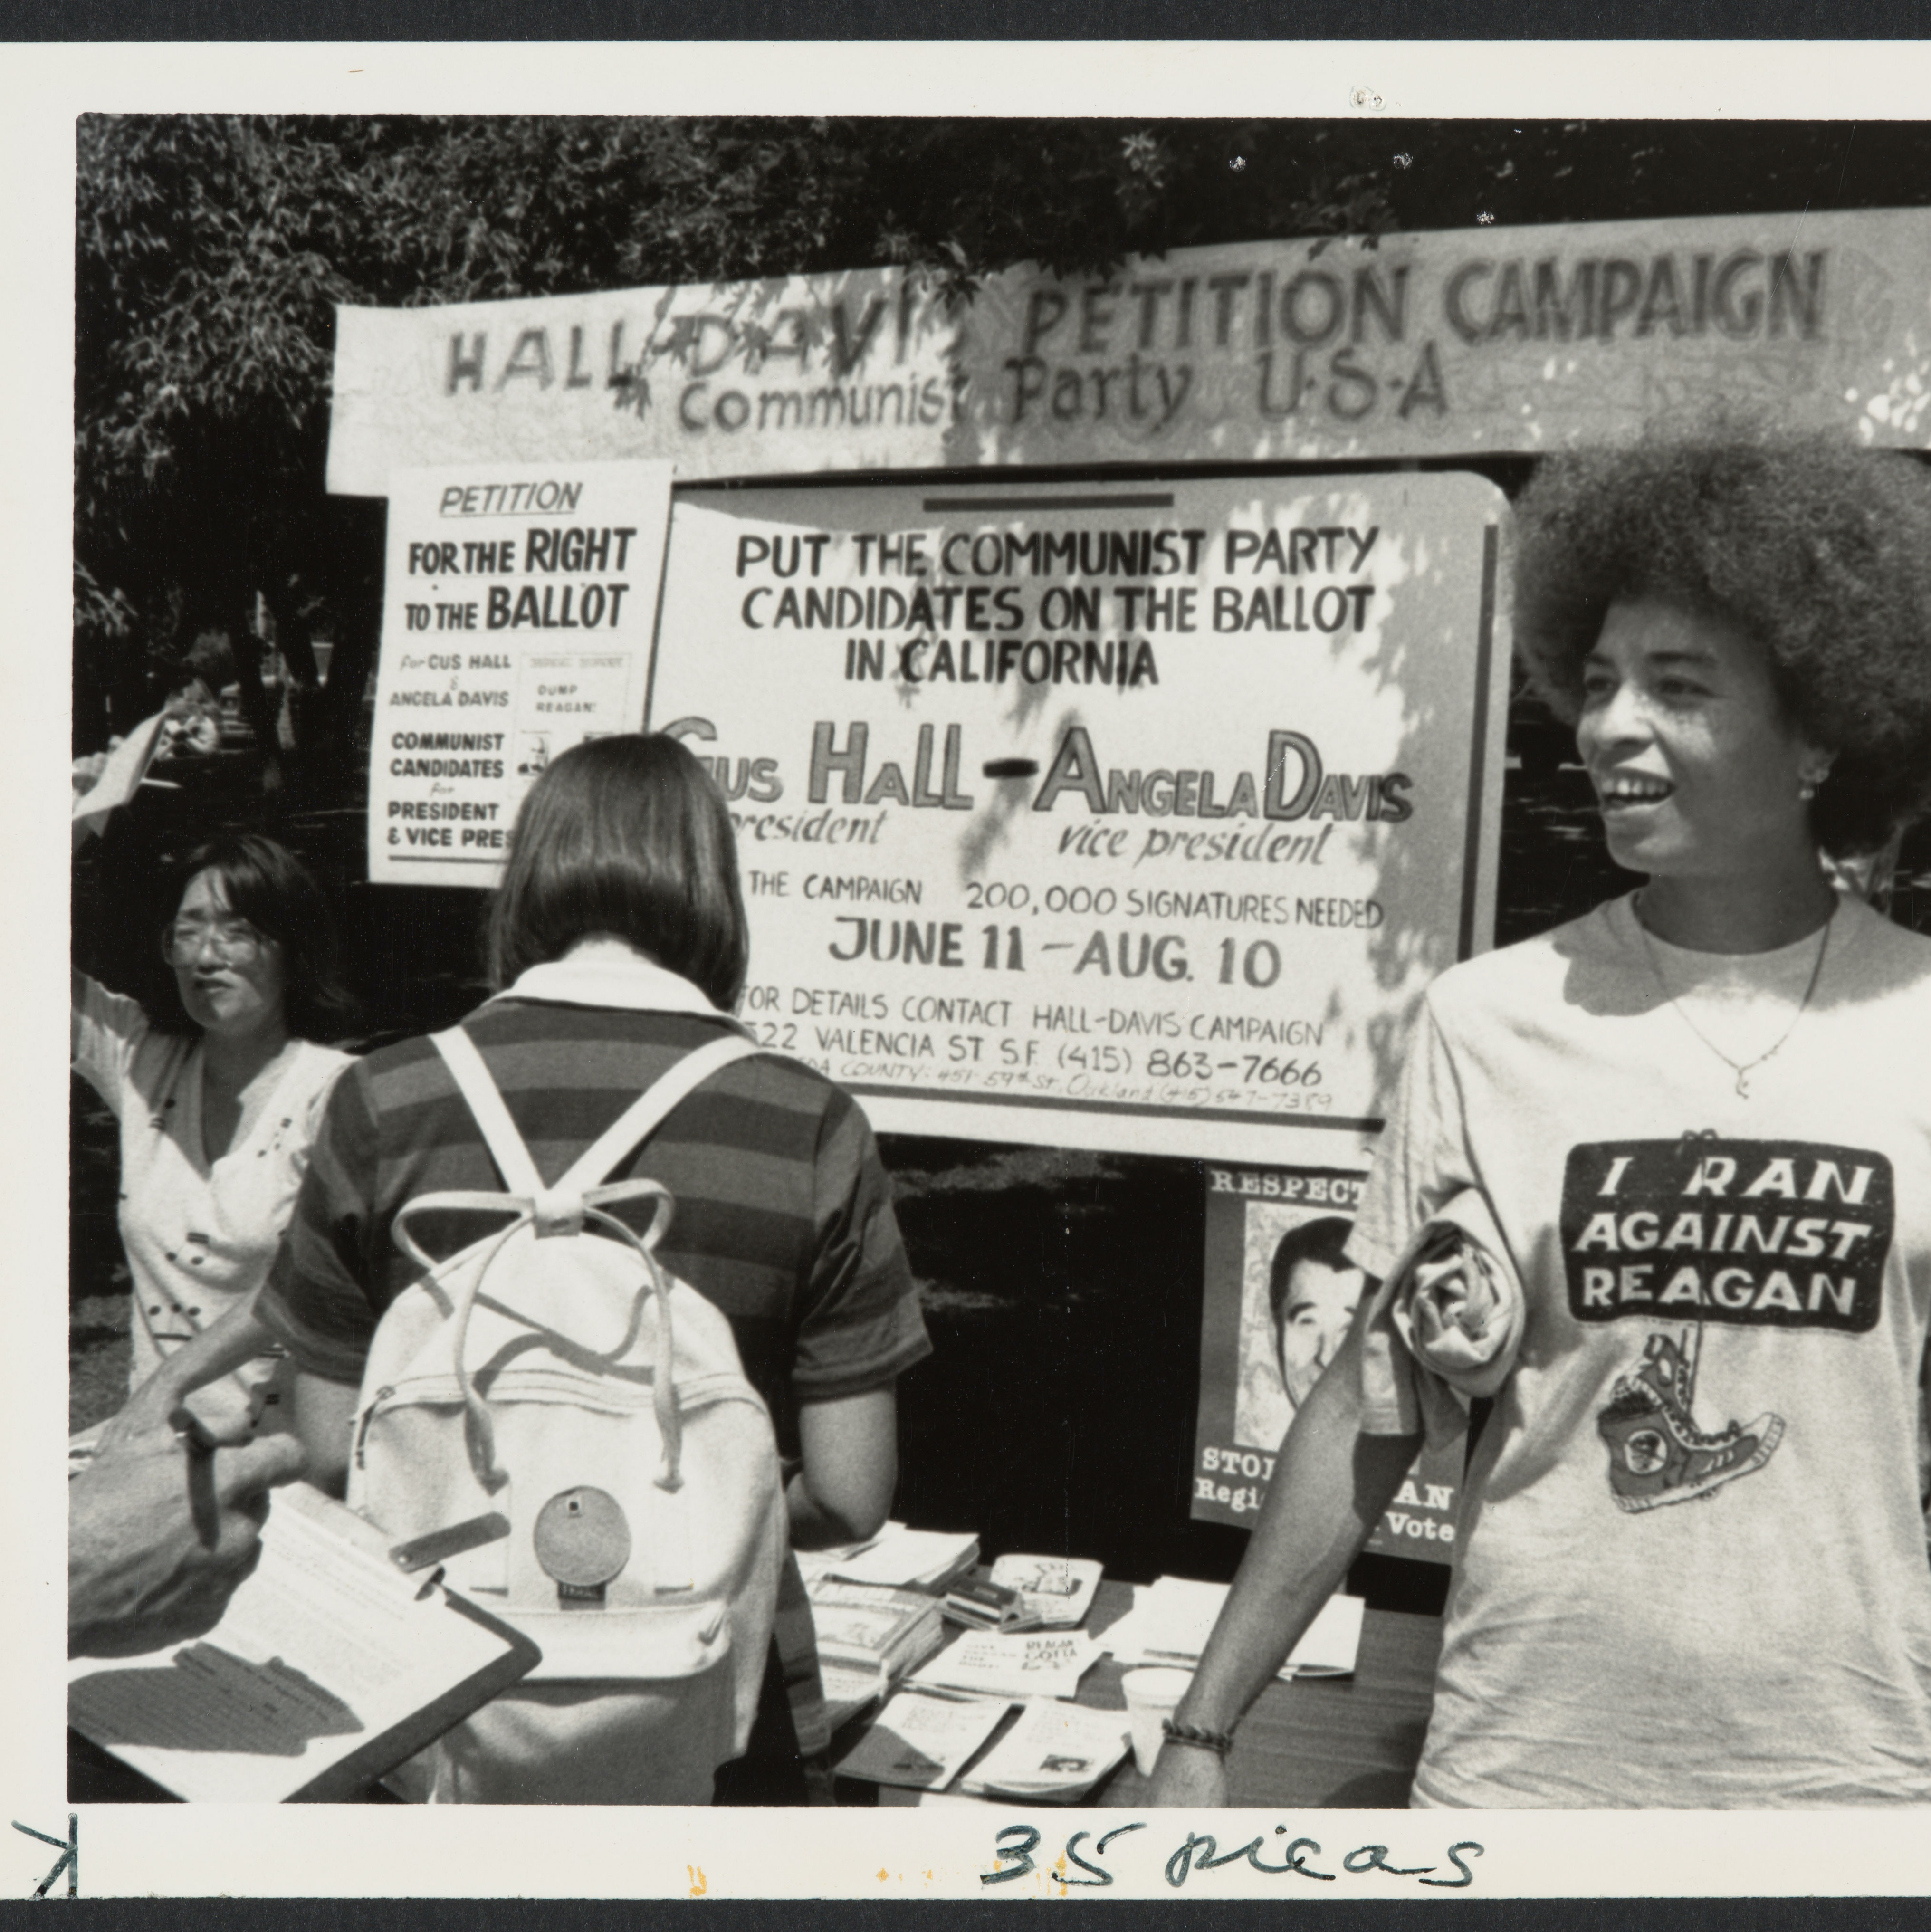 Black & white image of Angela Davis at campaign event, in front of booth.